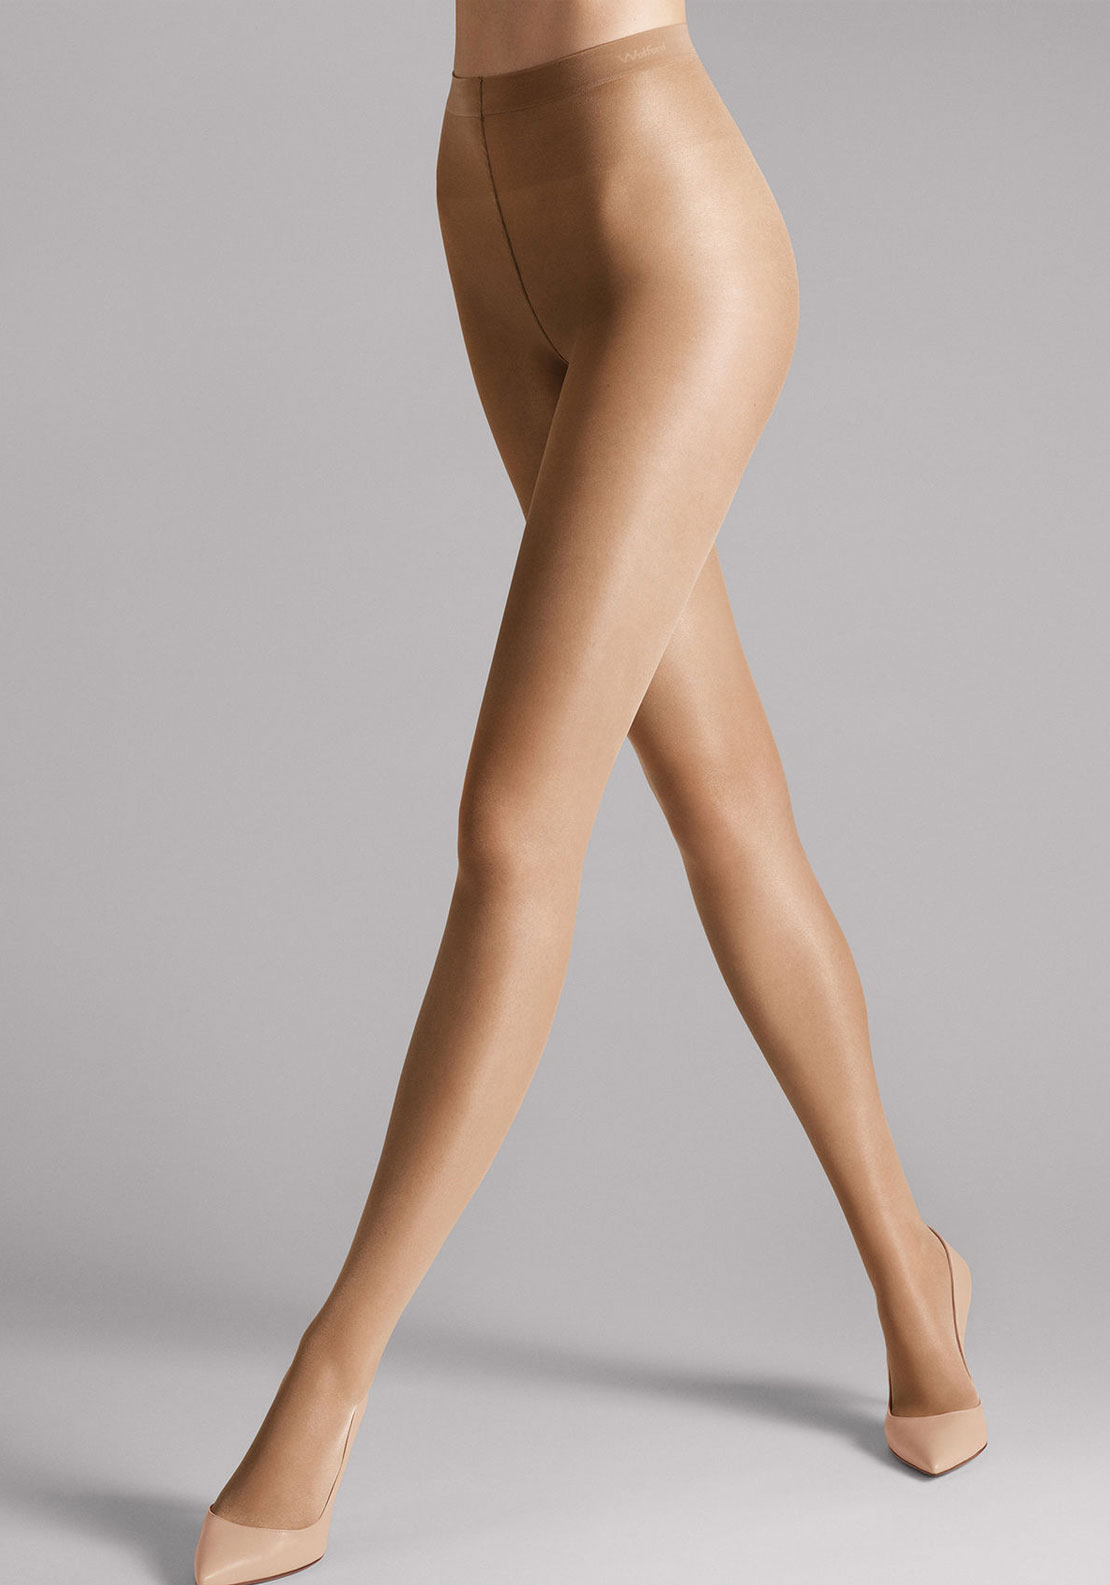 Wolford Satin Touch 20 Sheer Tights, Caramel